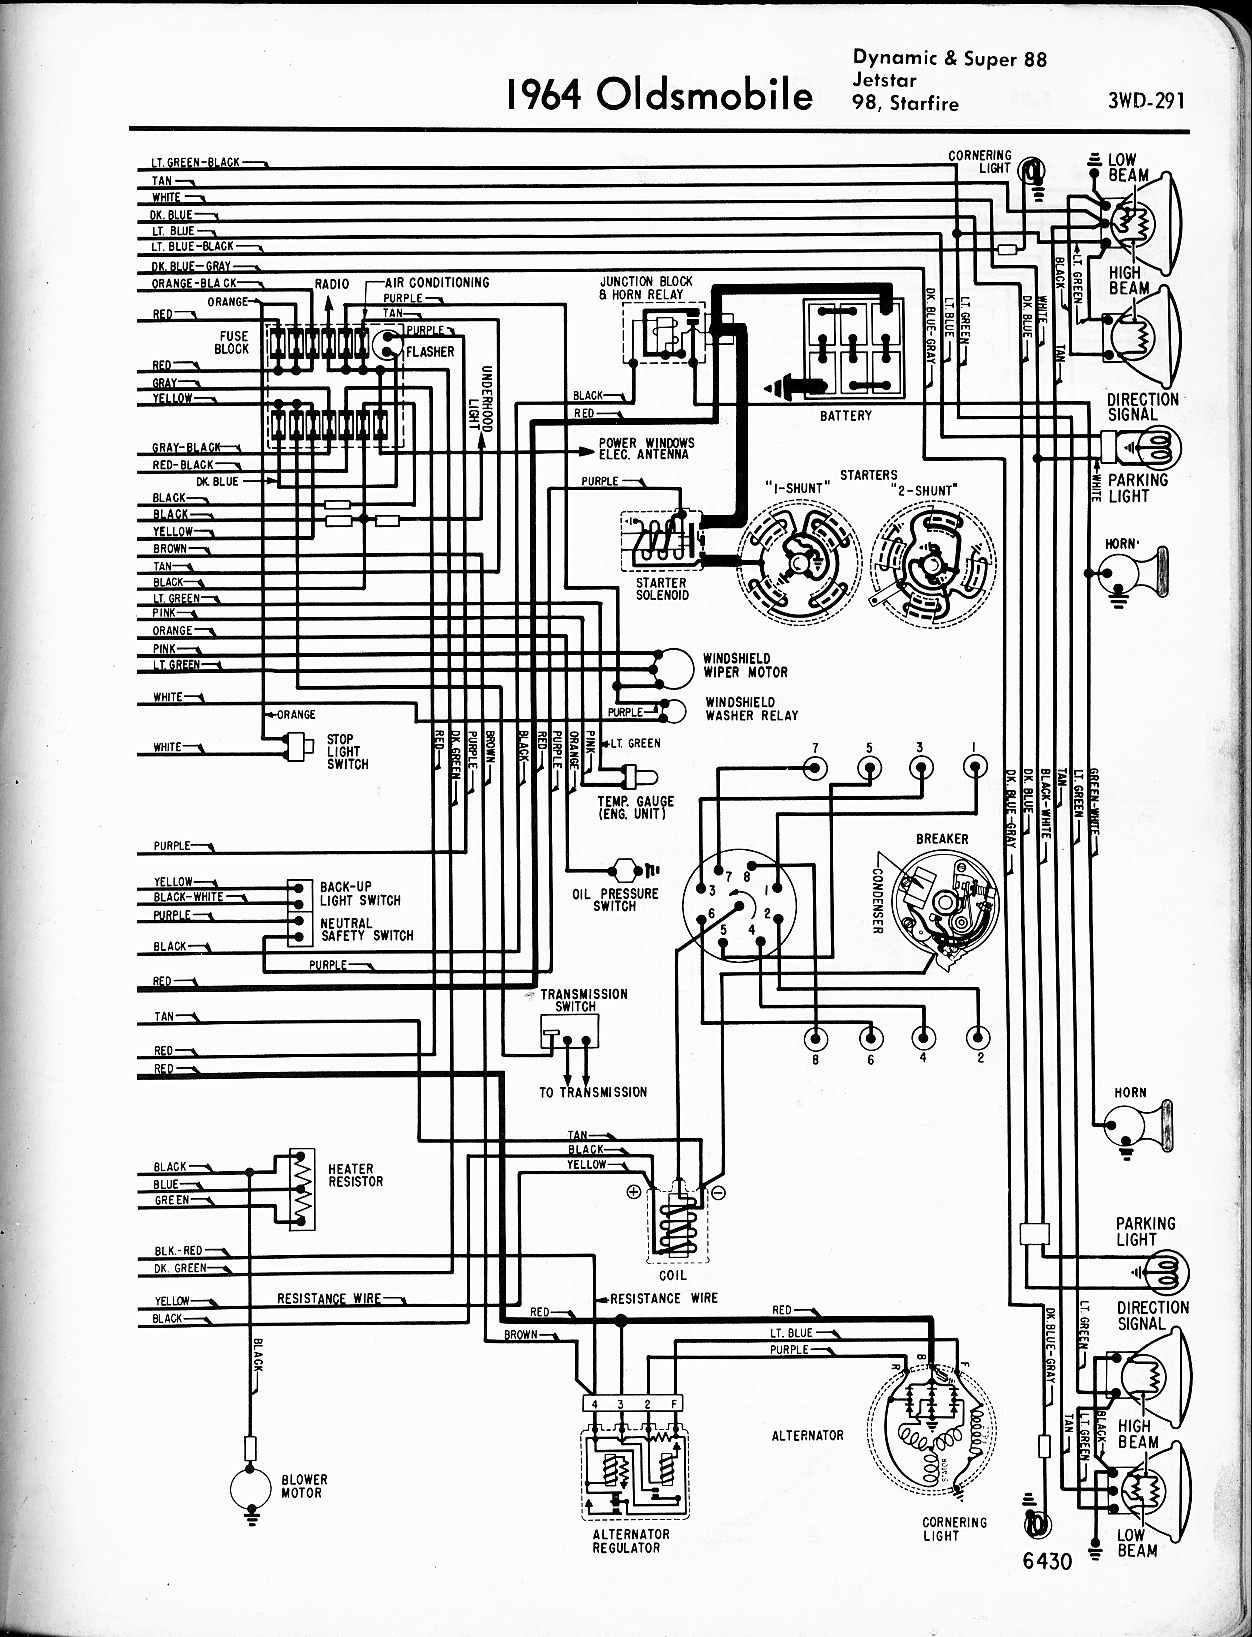 oldsmobile wiring diagrams the old car manual project 1964 dynamic 88 super 88 jetstar 98 starfire left page